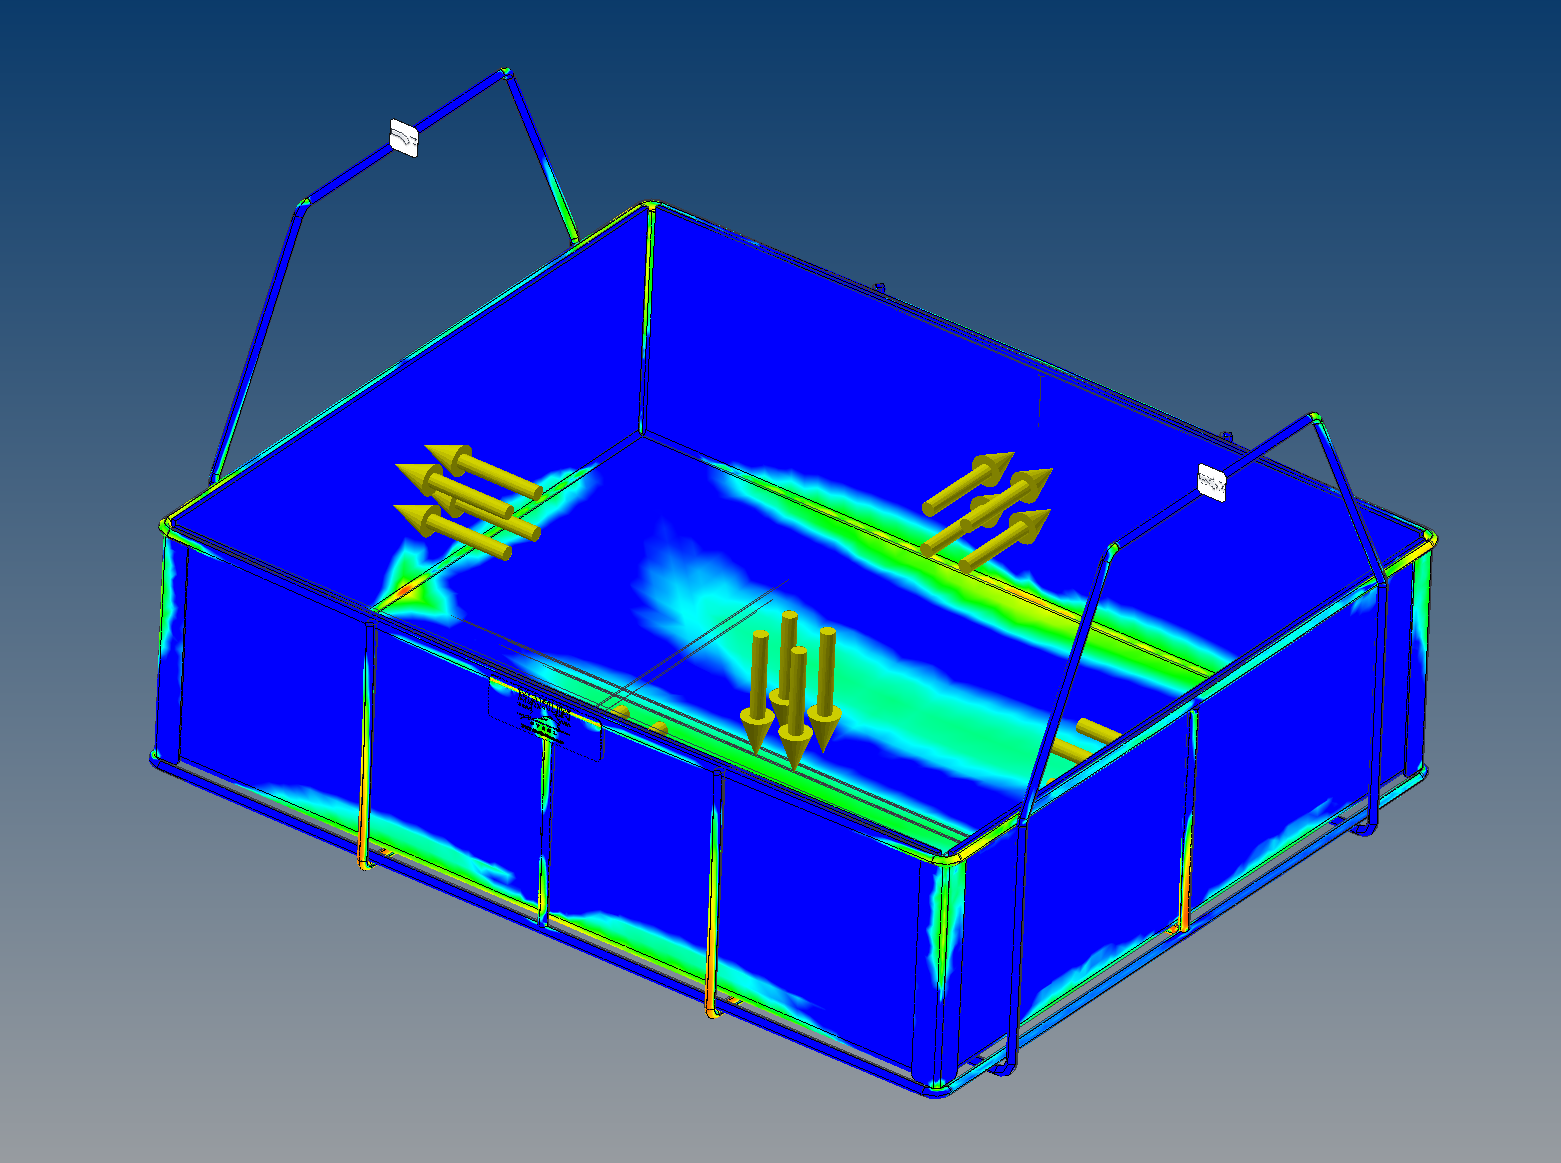 A closeup image of a basket's stress analysis test results.